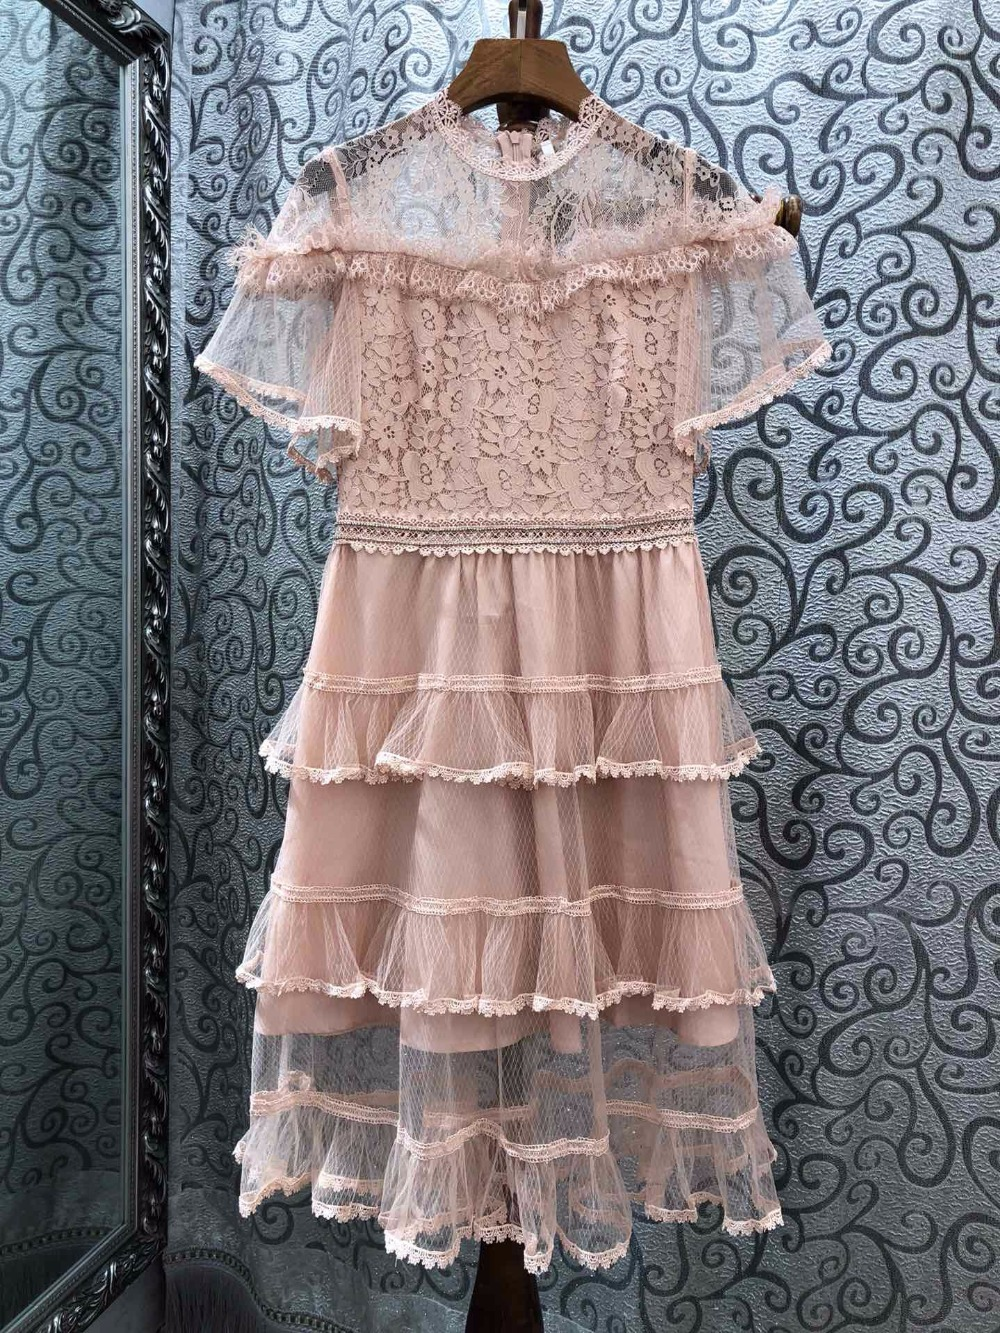 BH04899      High quality New Fashion Women 2019 spring Dress Luxury famous   European Design  party style dress